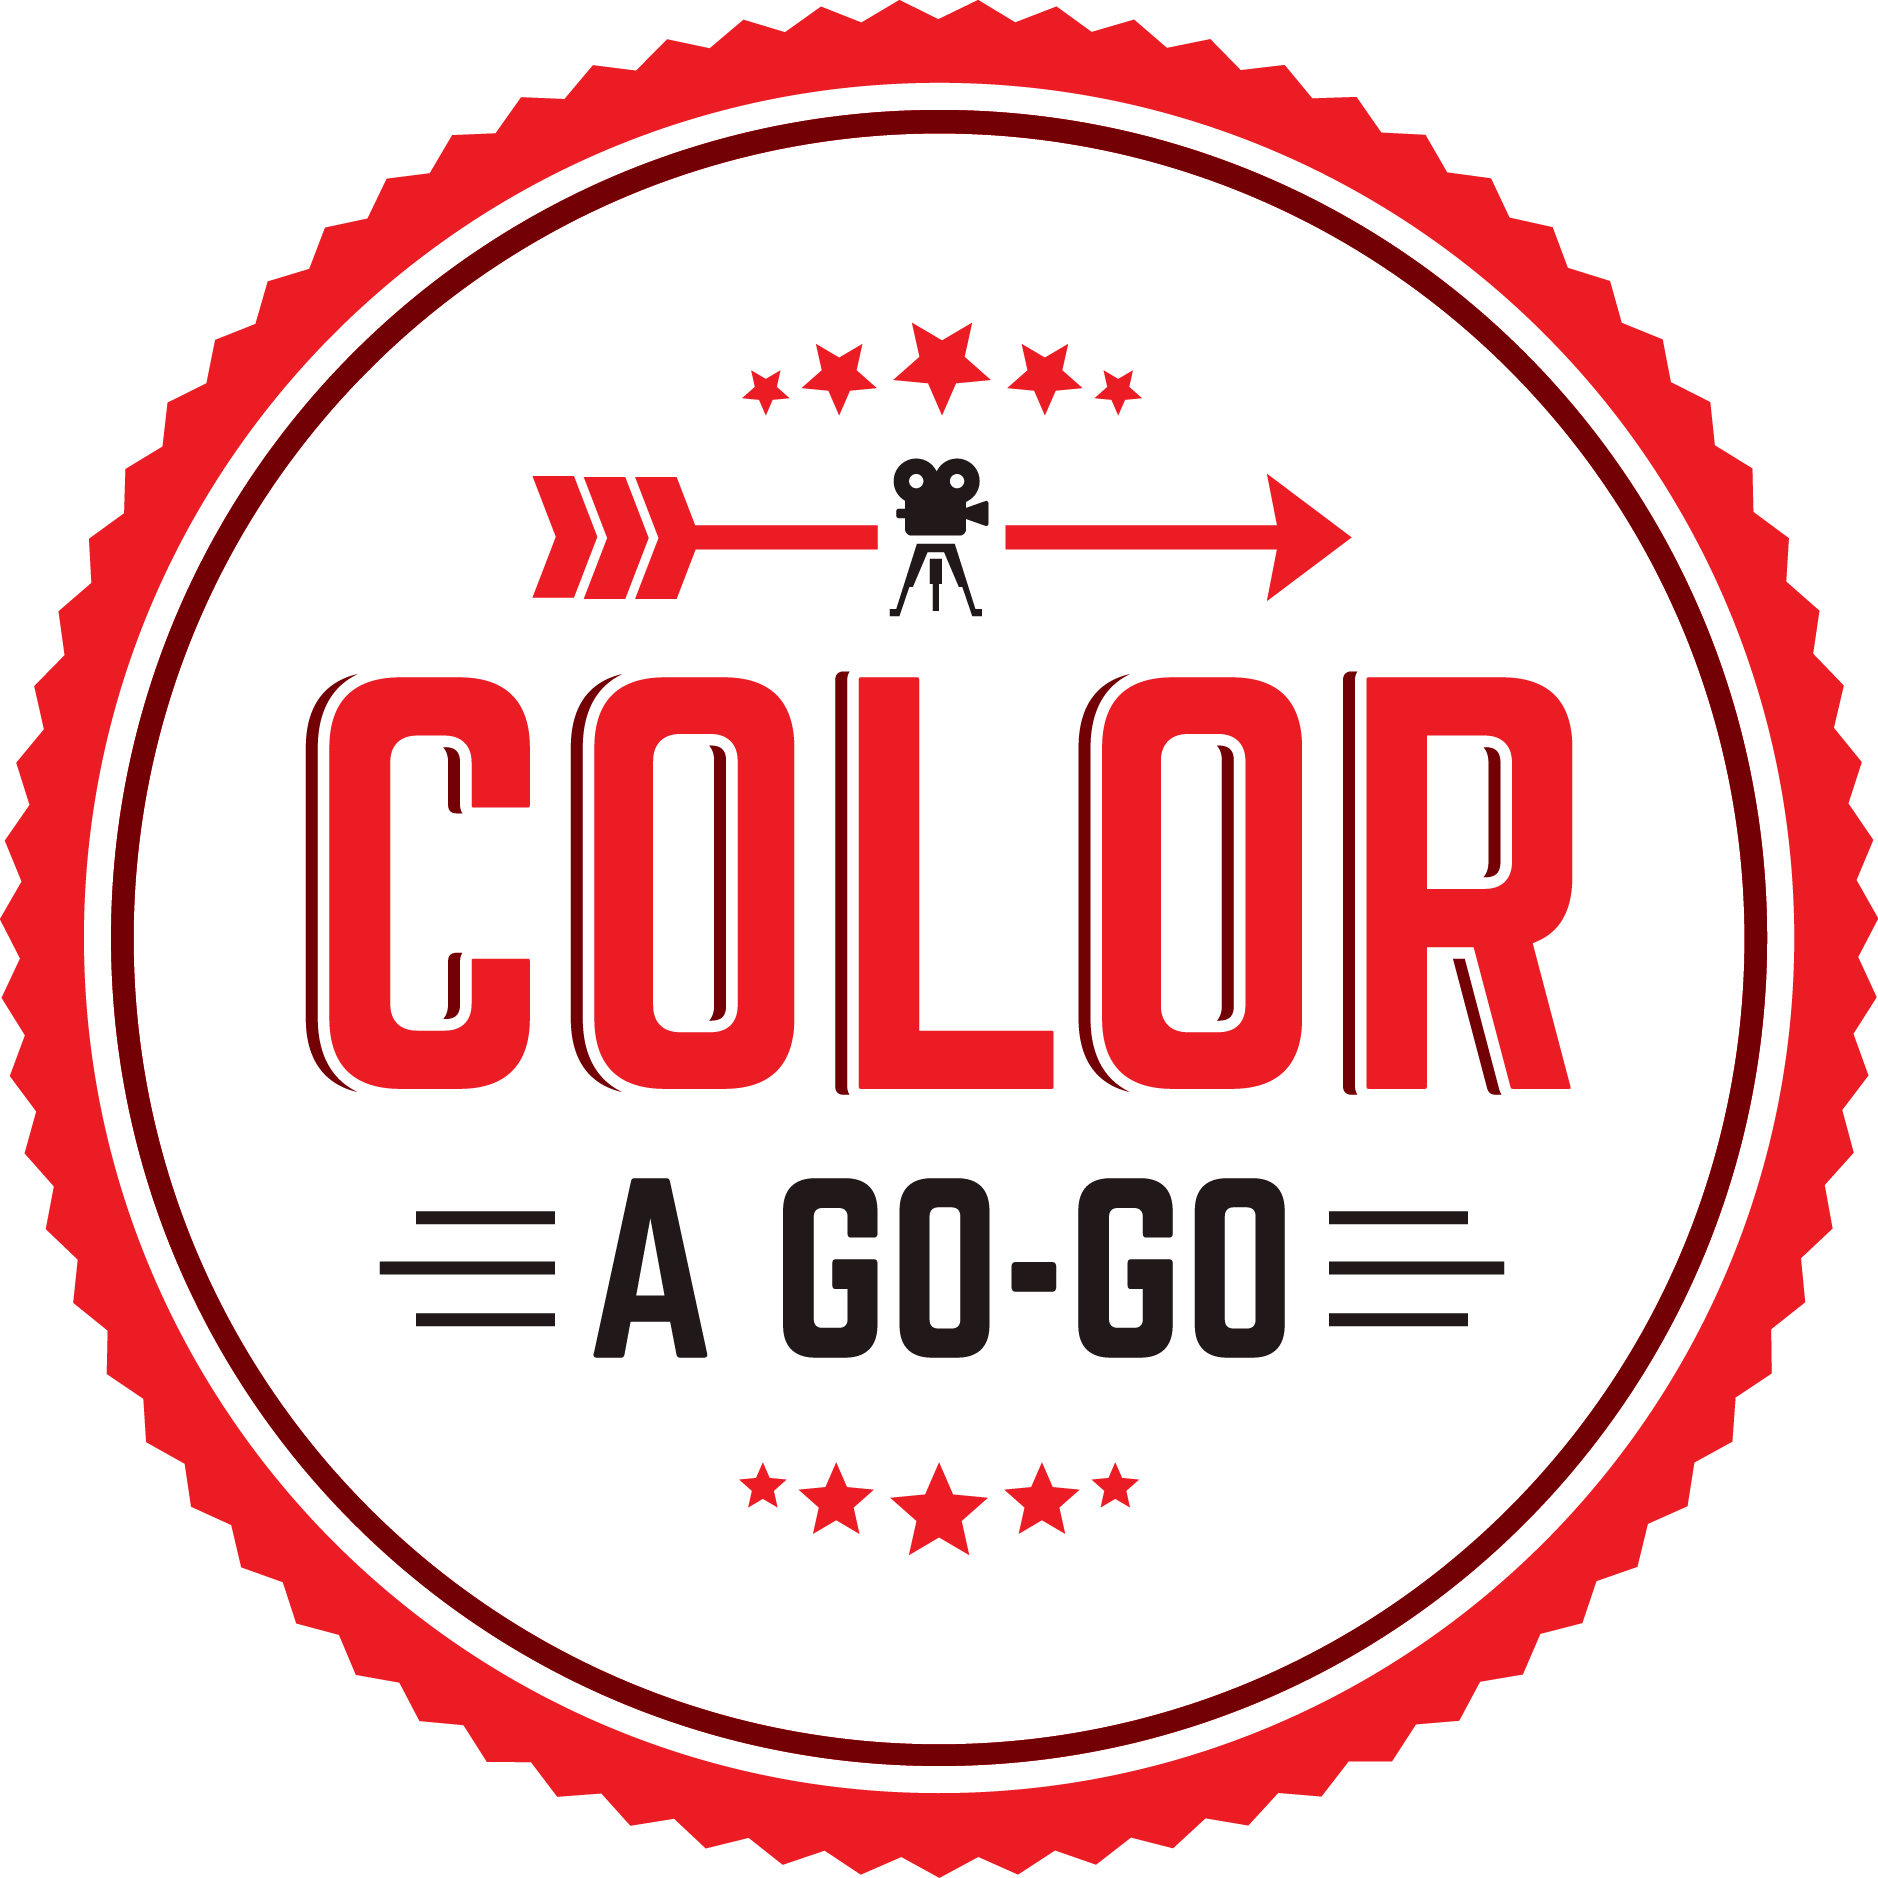 COLOR_A_GO_GO_LOGO__FULL COLOR.png